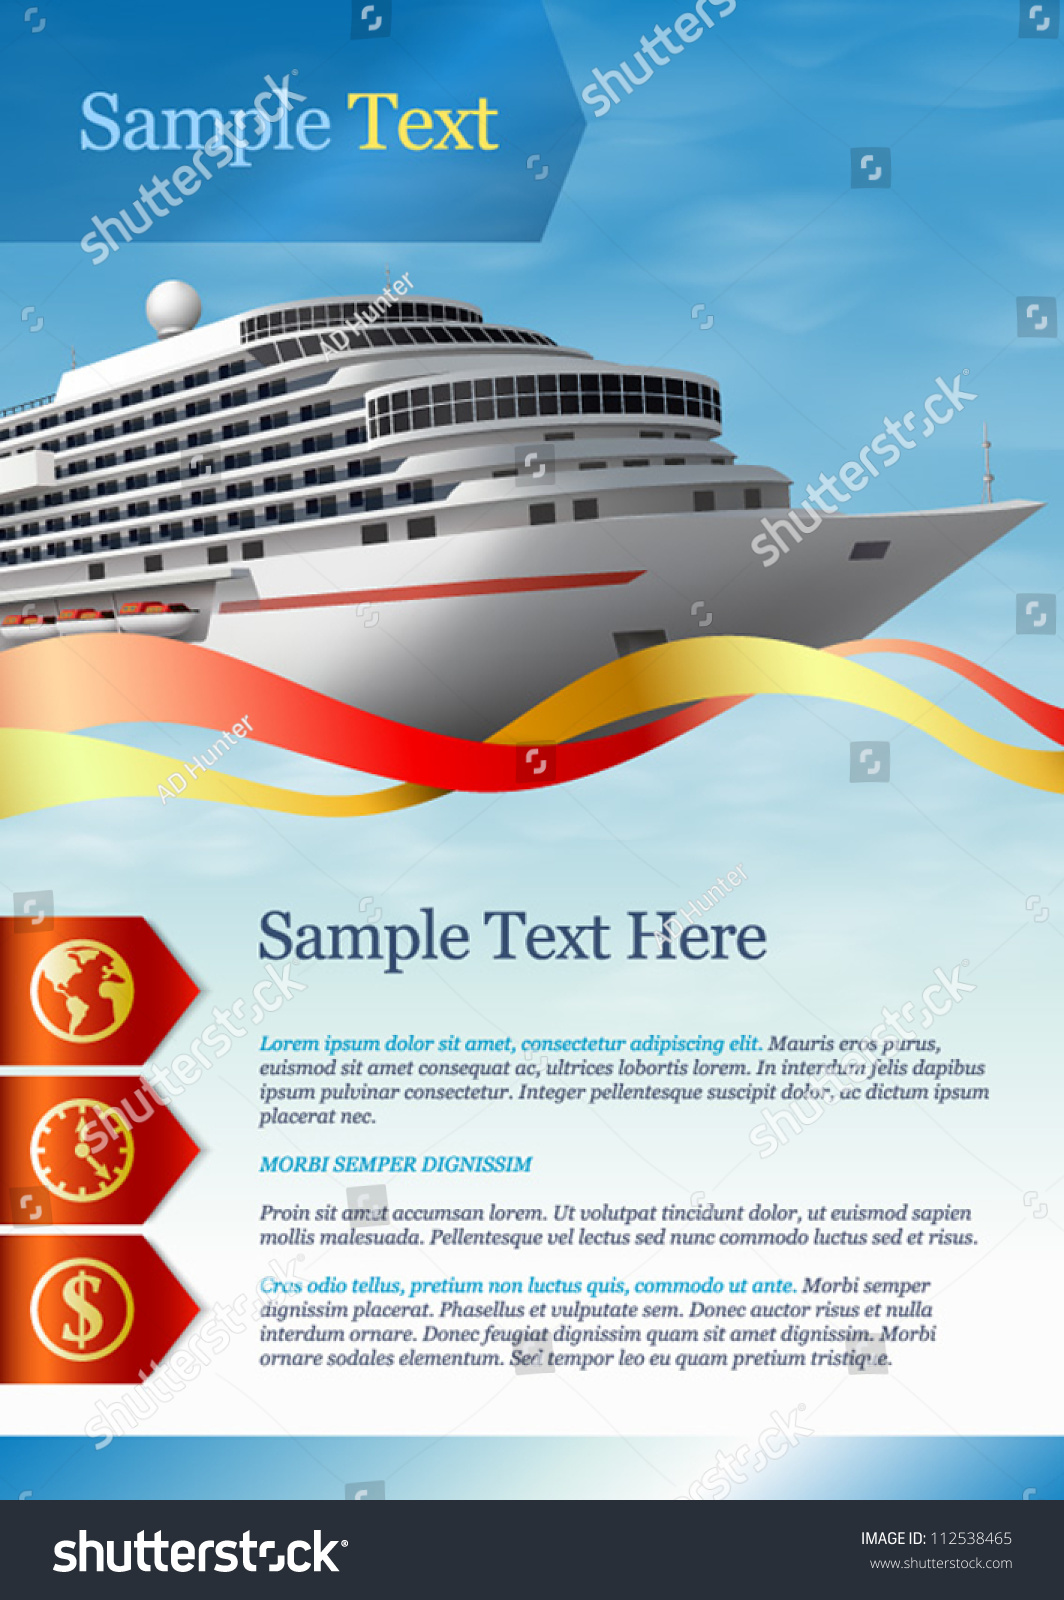 Template Advertising Cruise Liner Stock Vector 112538465